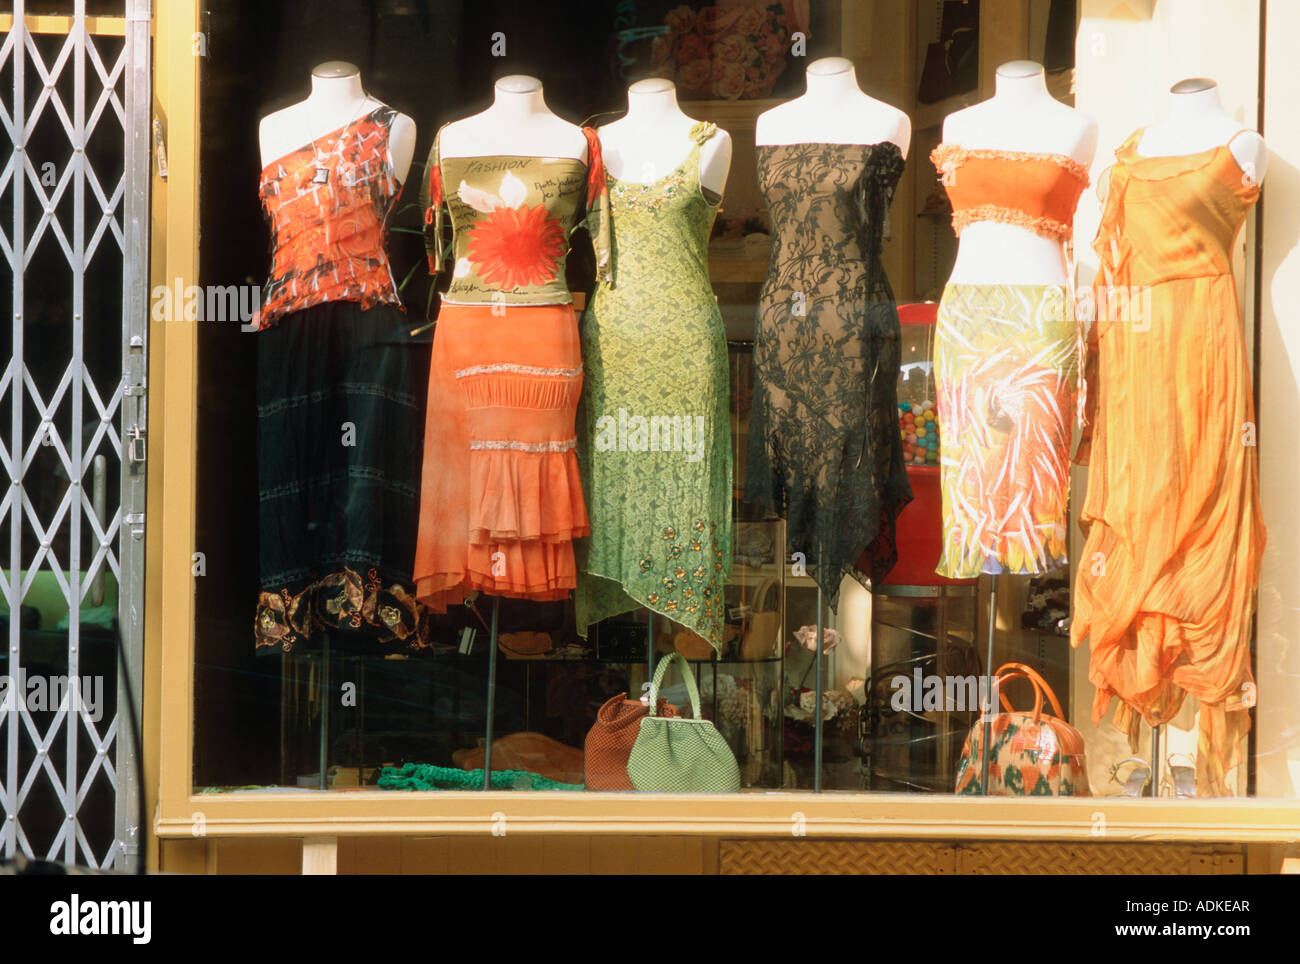 bf01c8a86cd8 female women s dresses in boutique shop display window in new york soho